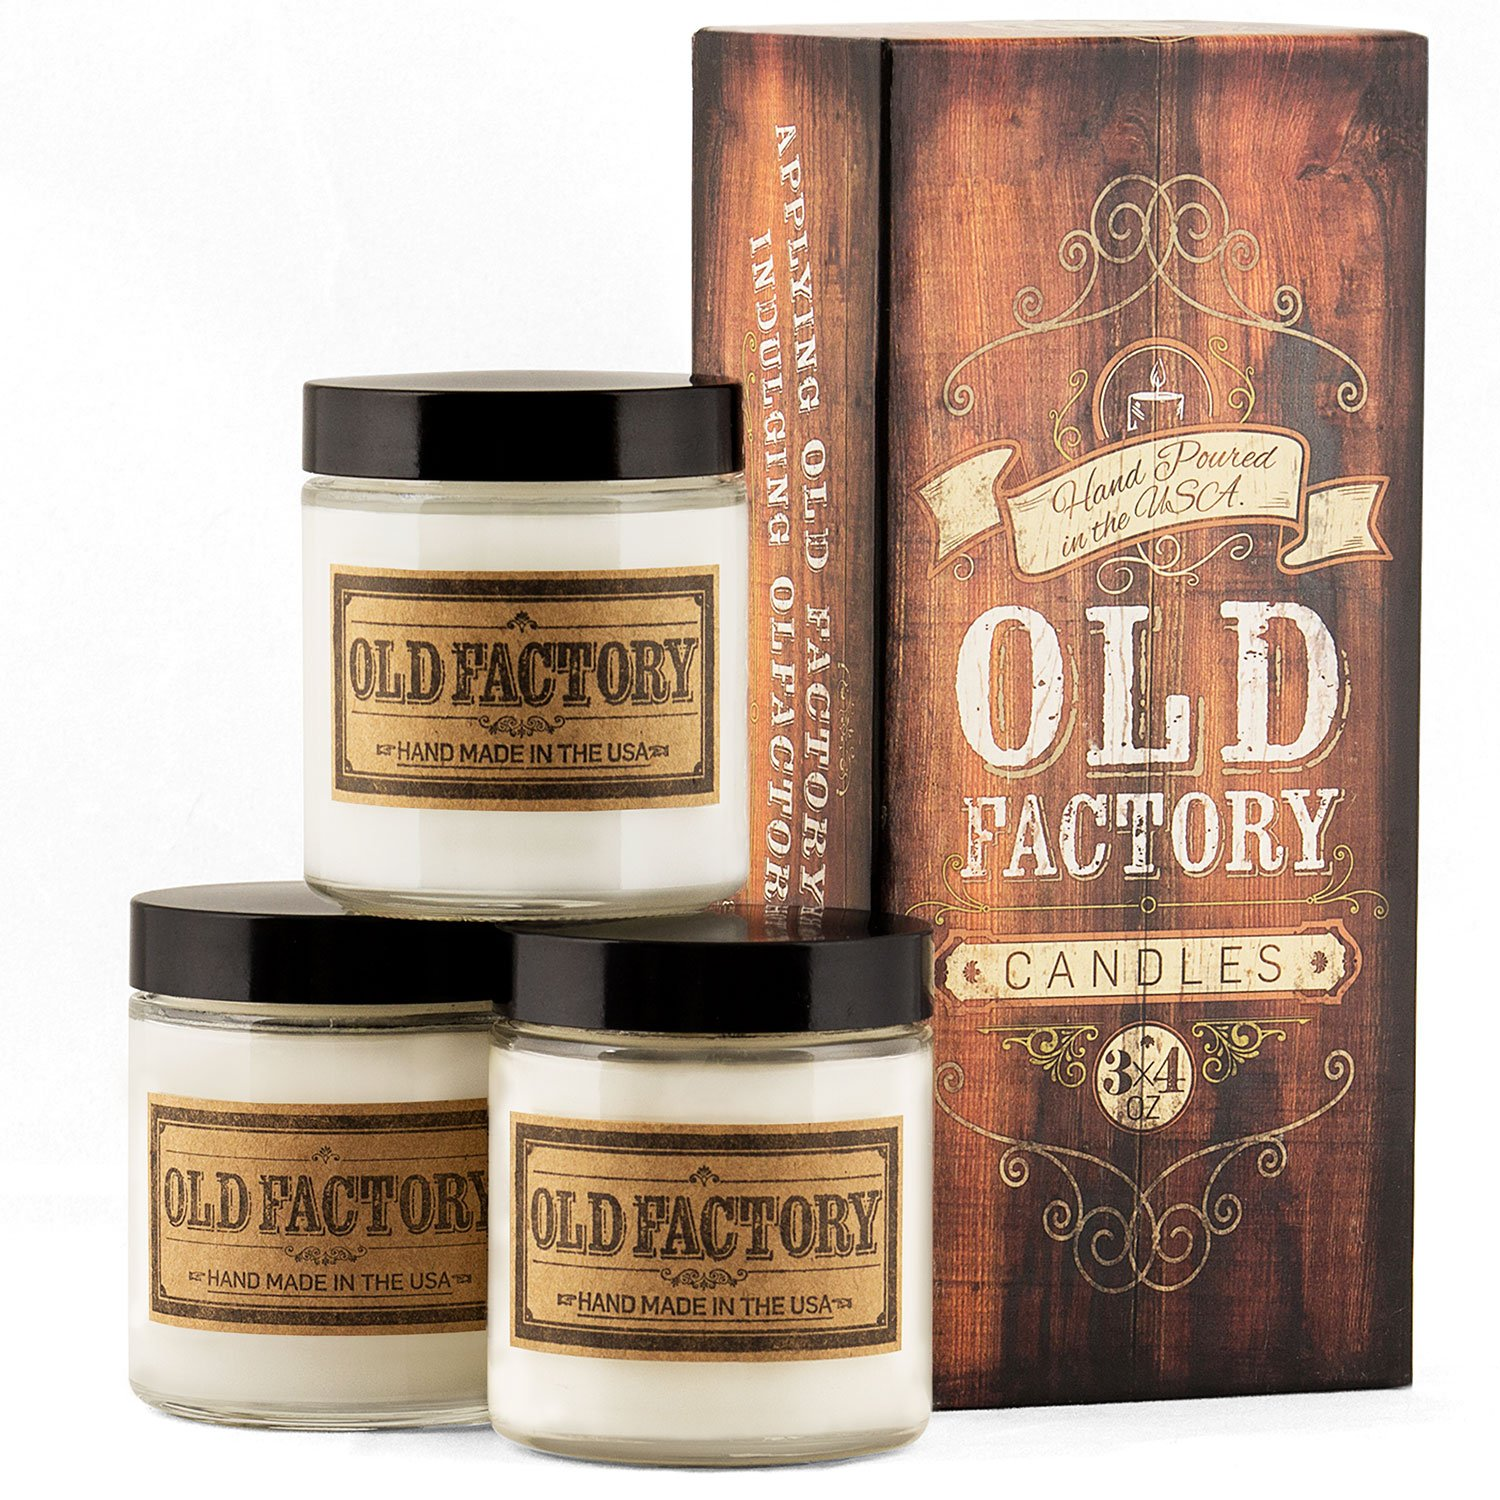 Old Factory Scented Candles - Coffee Shop - Set of 3: Coffee Bean, Hazelnut, and Chai Tea - 3 x 4-Ounce Soy Candles - Each Votive Candle is Handmade in the USA with only the Best Fragrance Oils by Old Factory (Image #3)